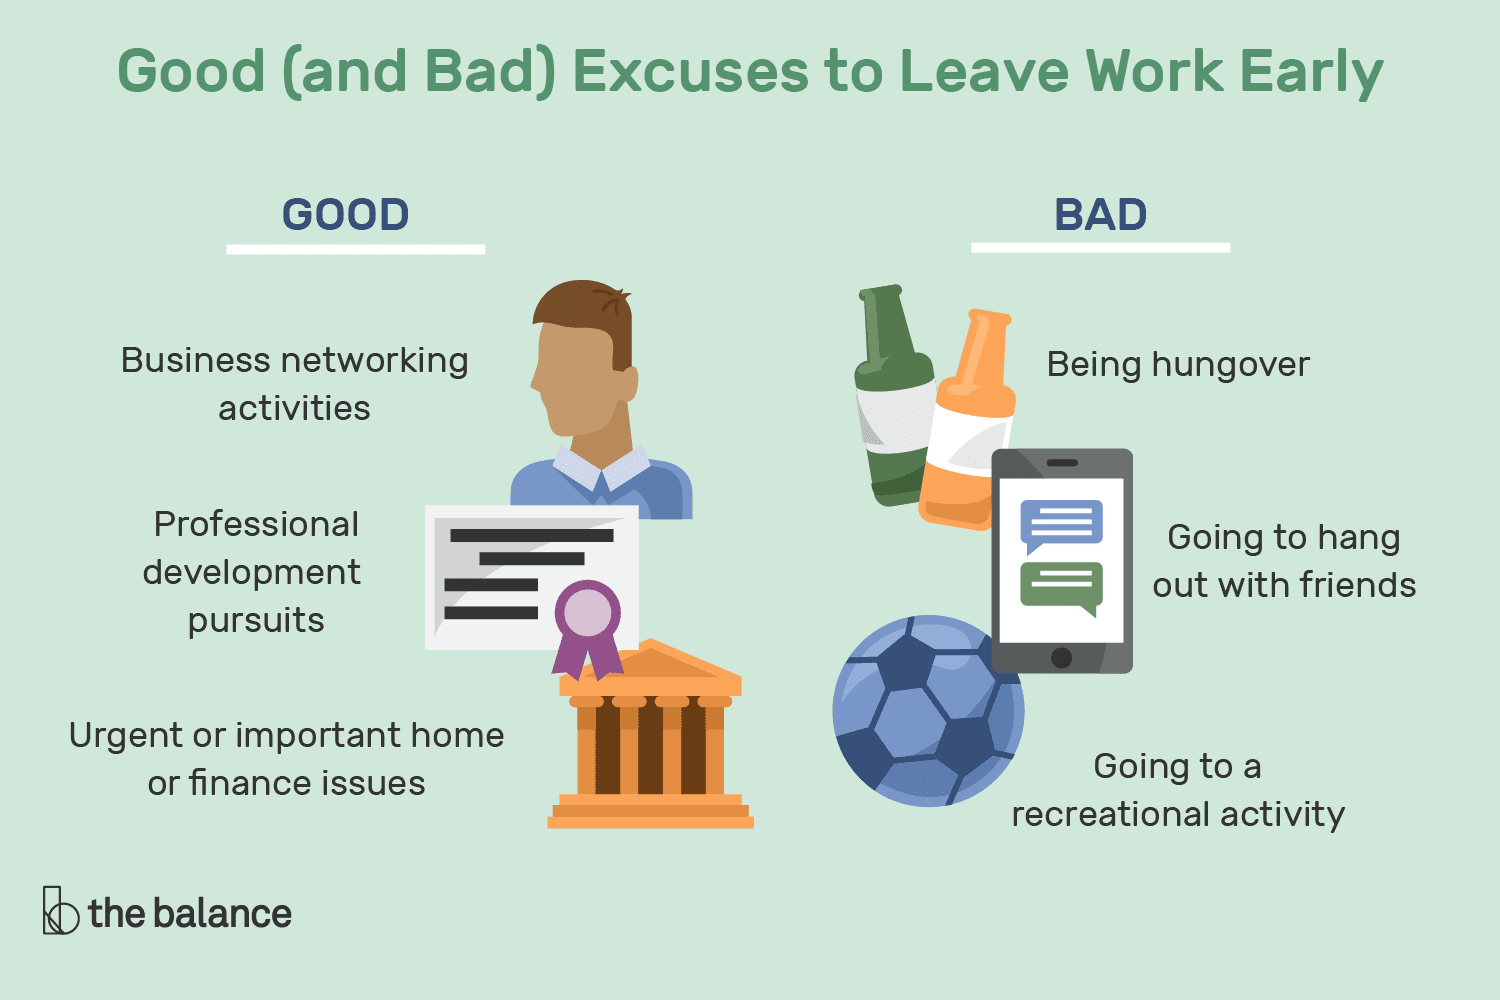 Reasons To Leave Work Early Good And Bad Excuses